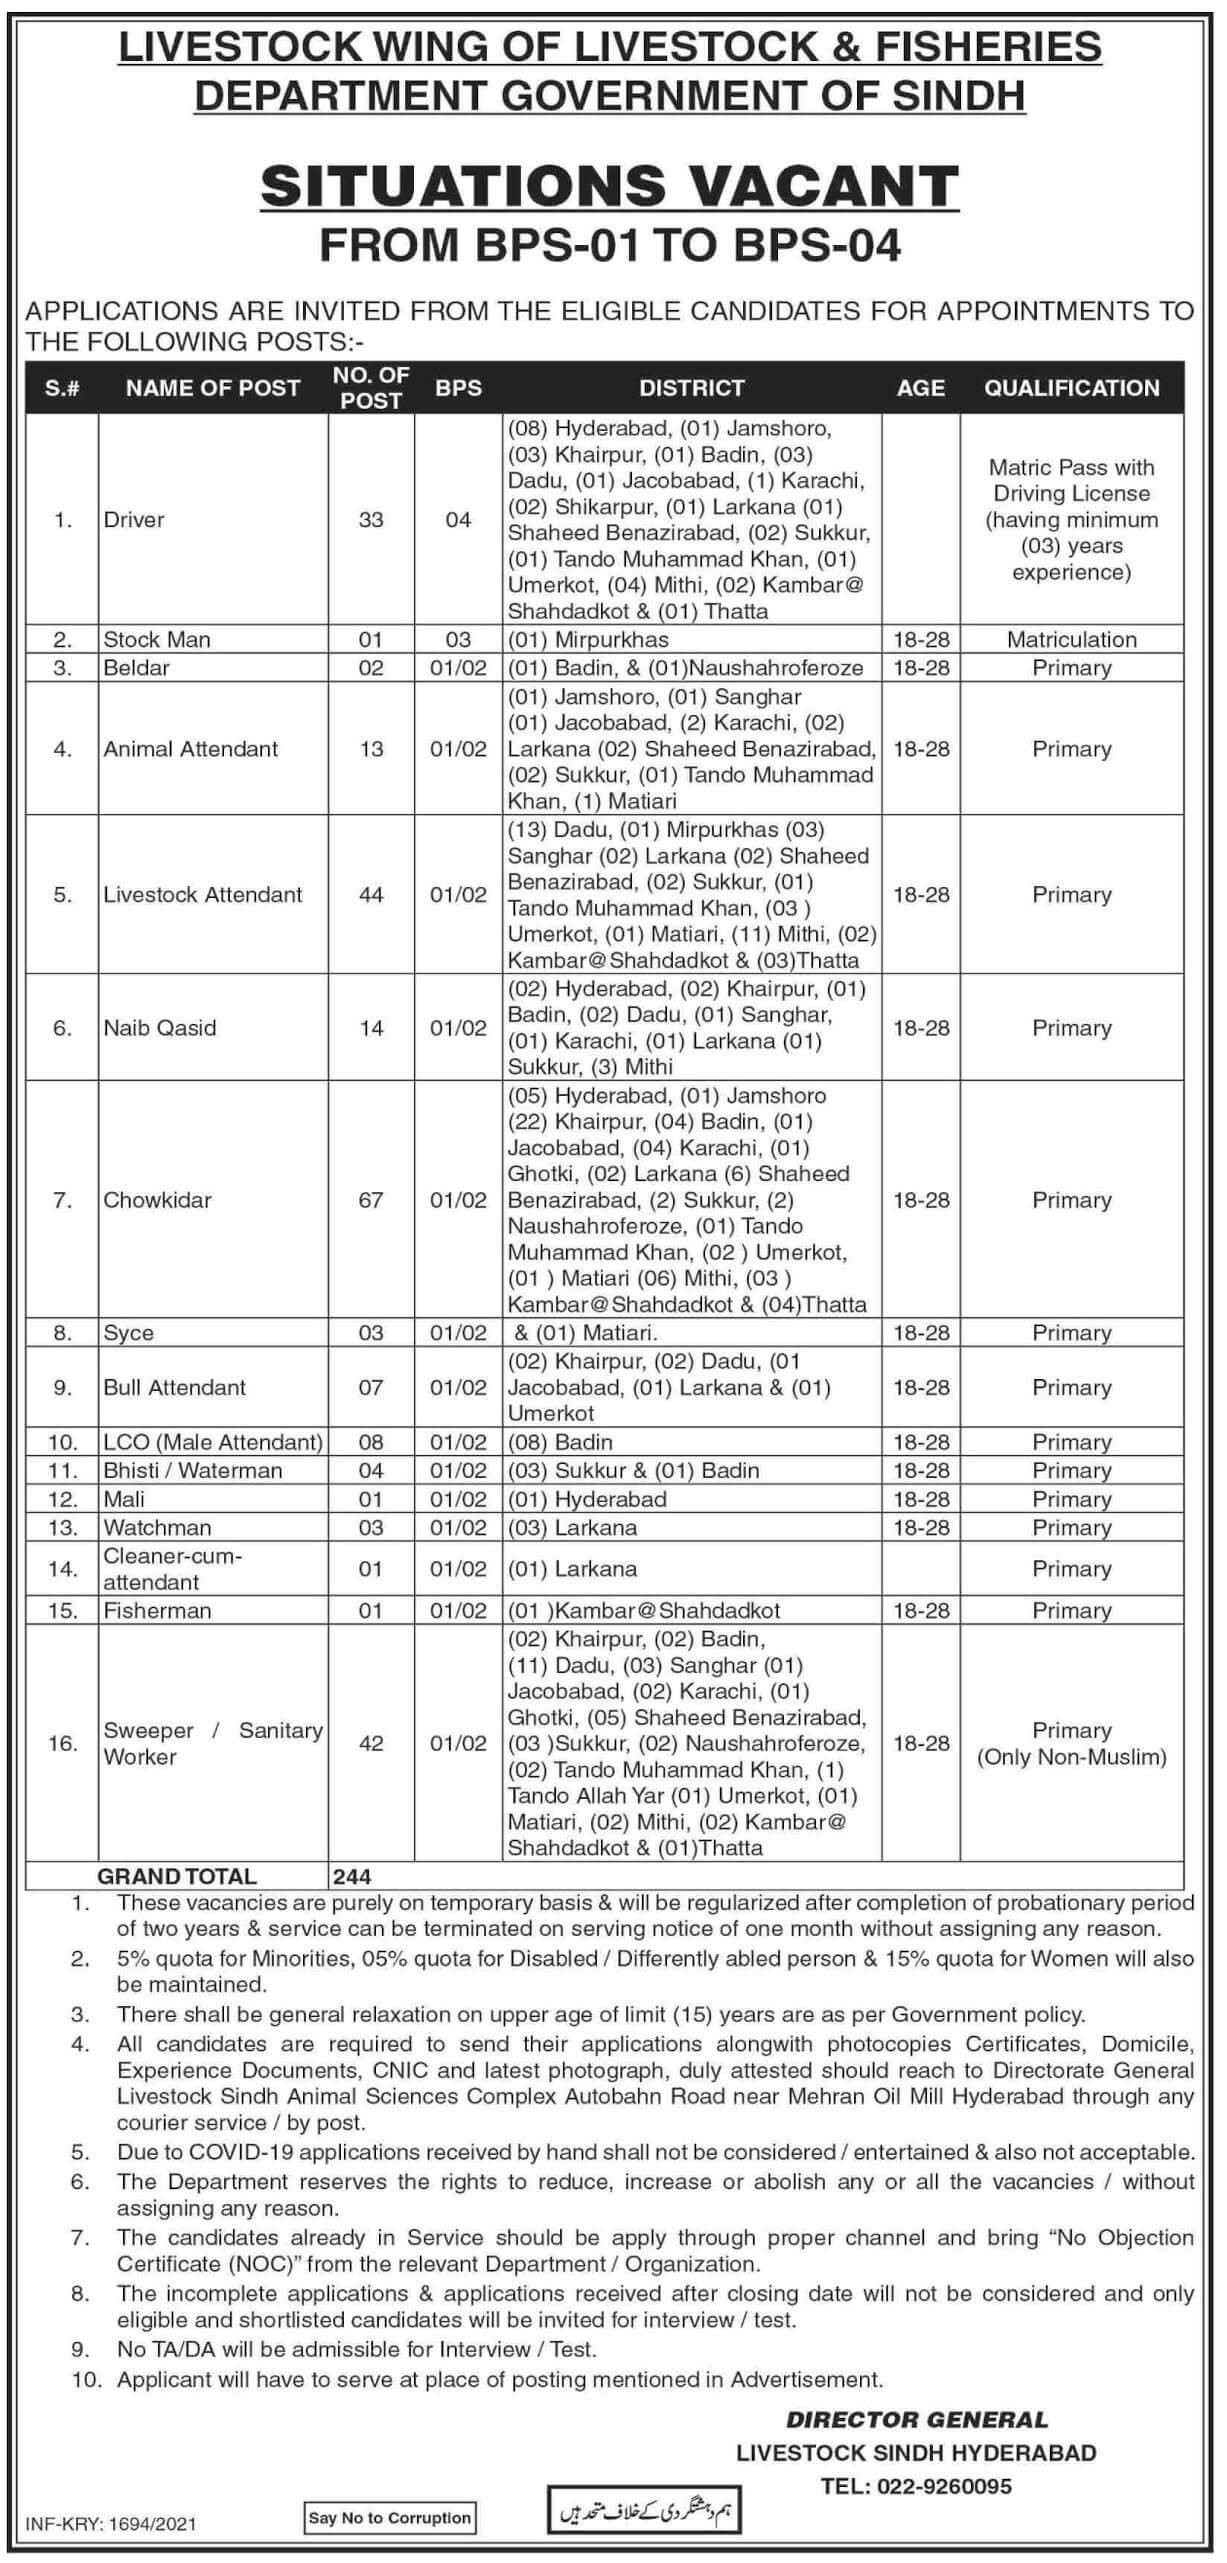 Livestock and Fisheries Department Sindh Jobs 2021 in Pakistan